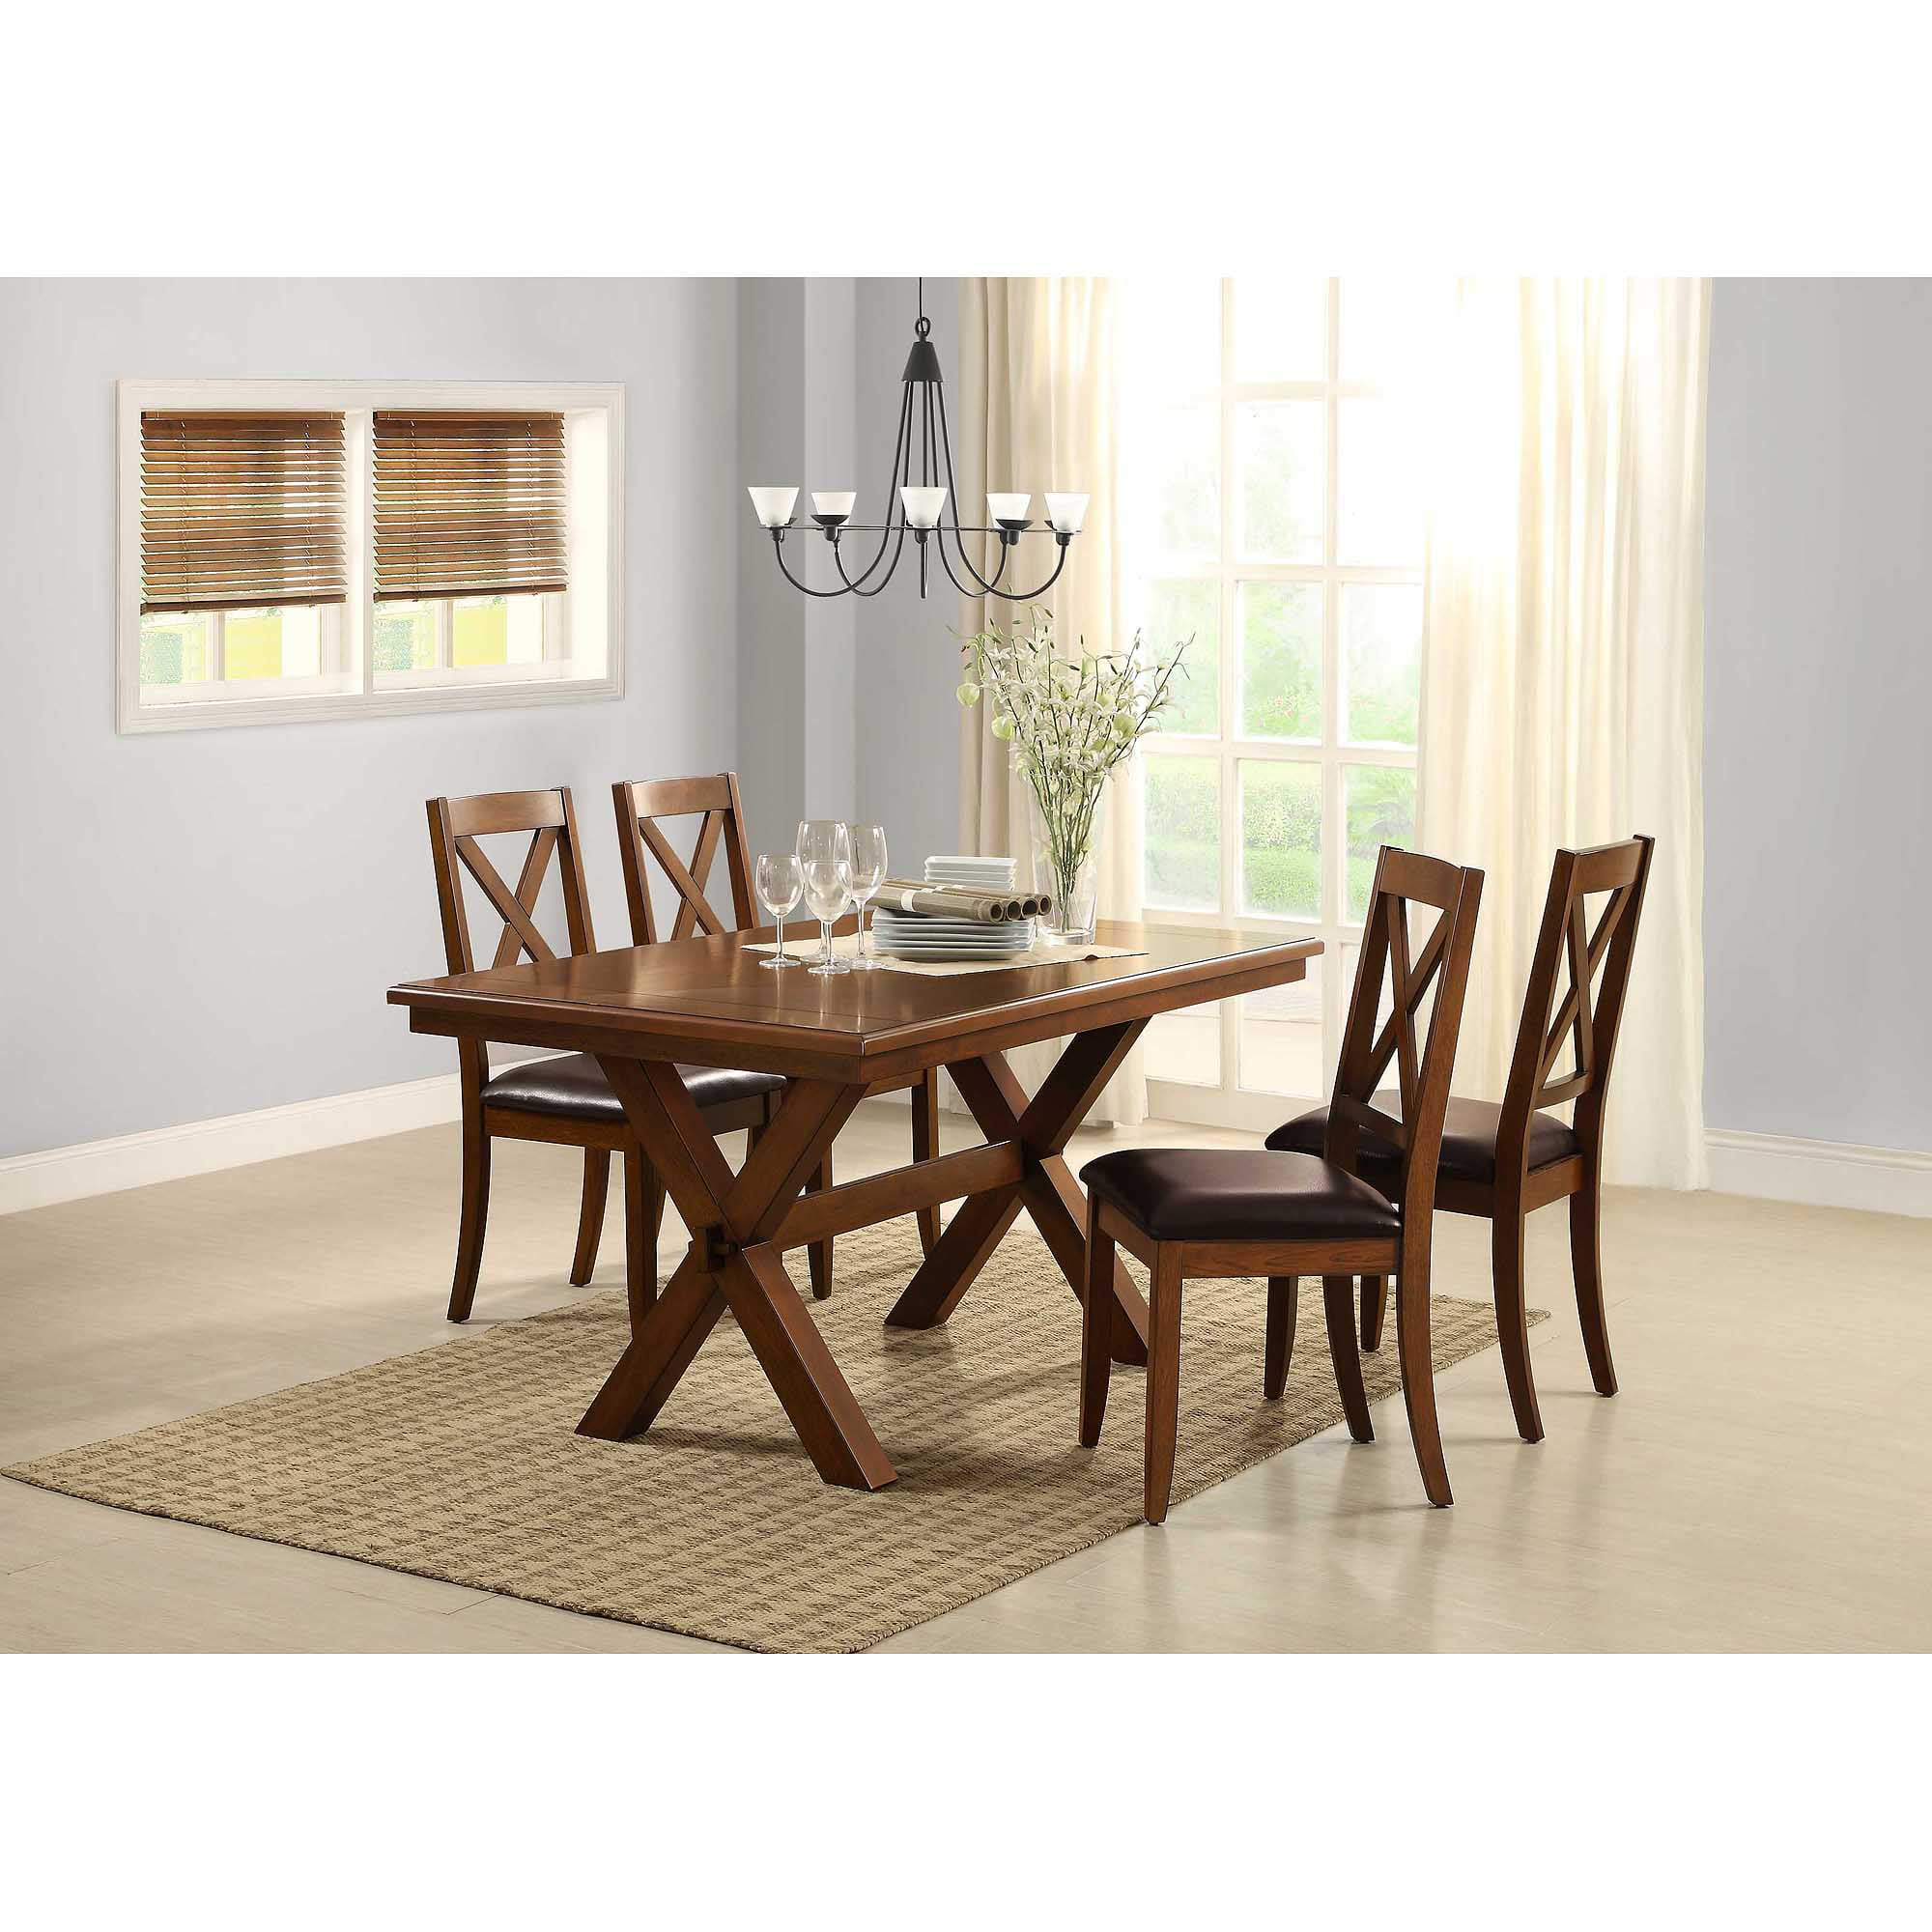 Better Homes U0026 Gardens Maddox Crossing Dining Table, Brown   Walmart.com